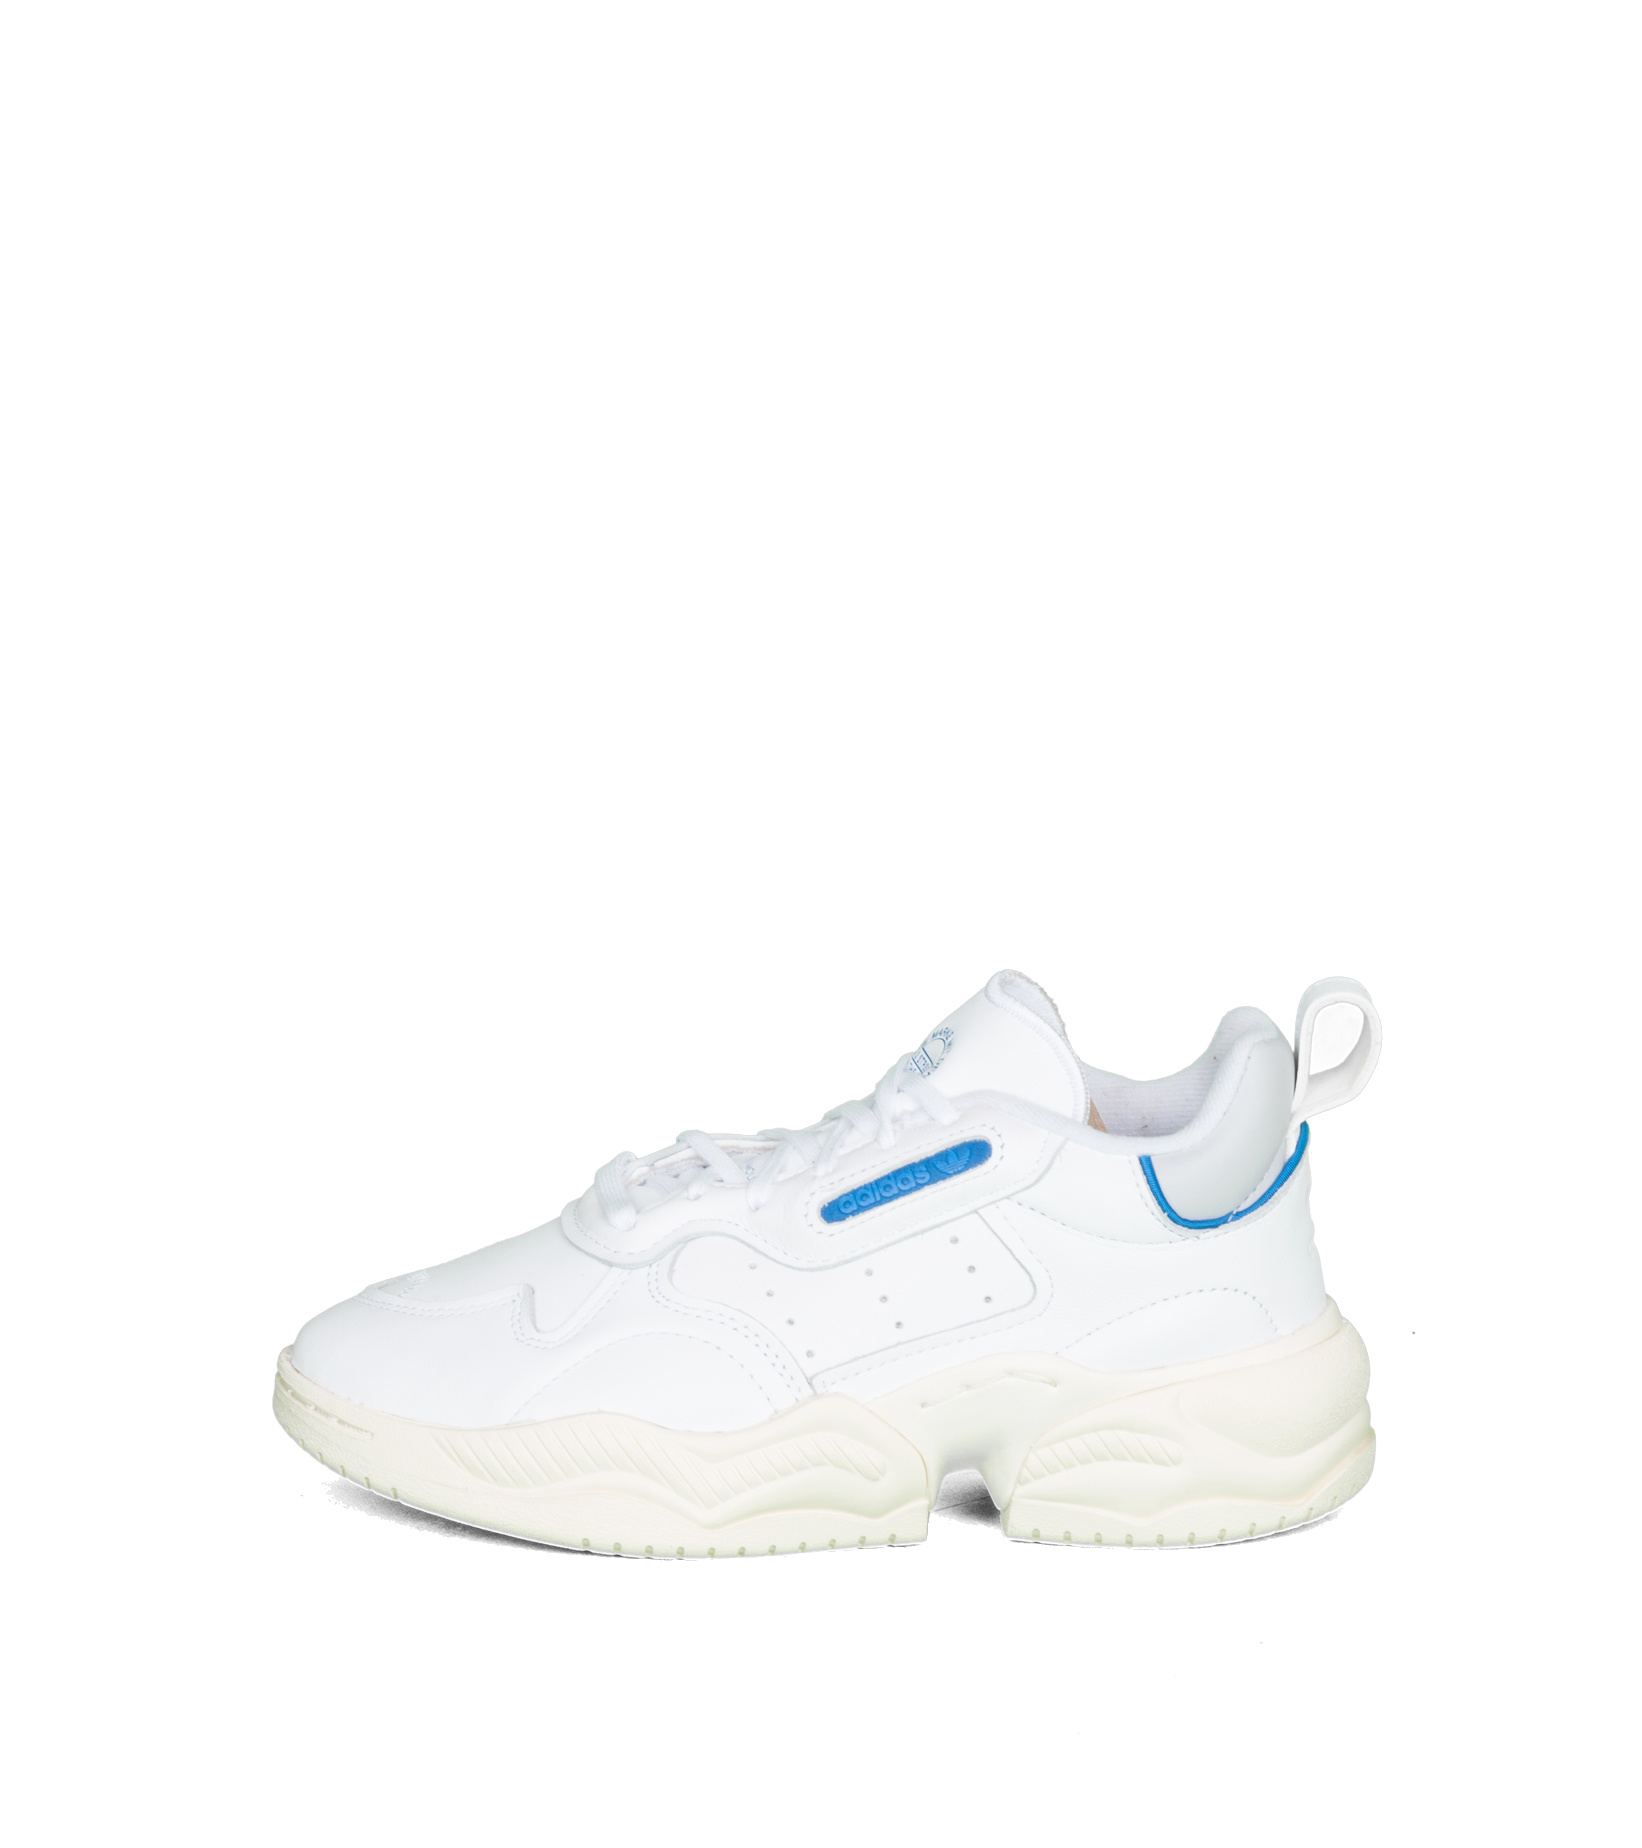 "Supercourt RX ""White/Blue""-3"